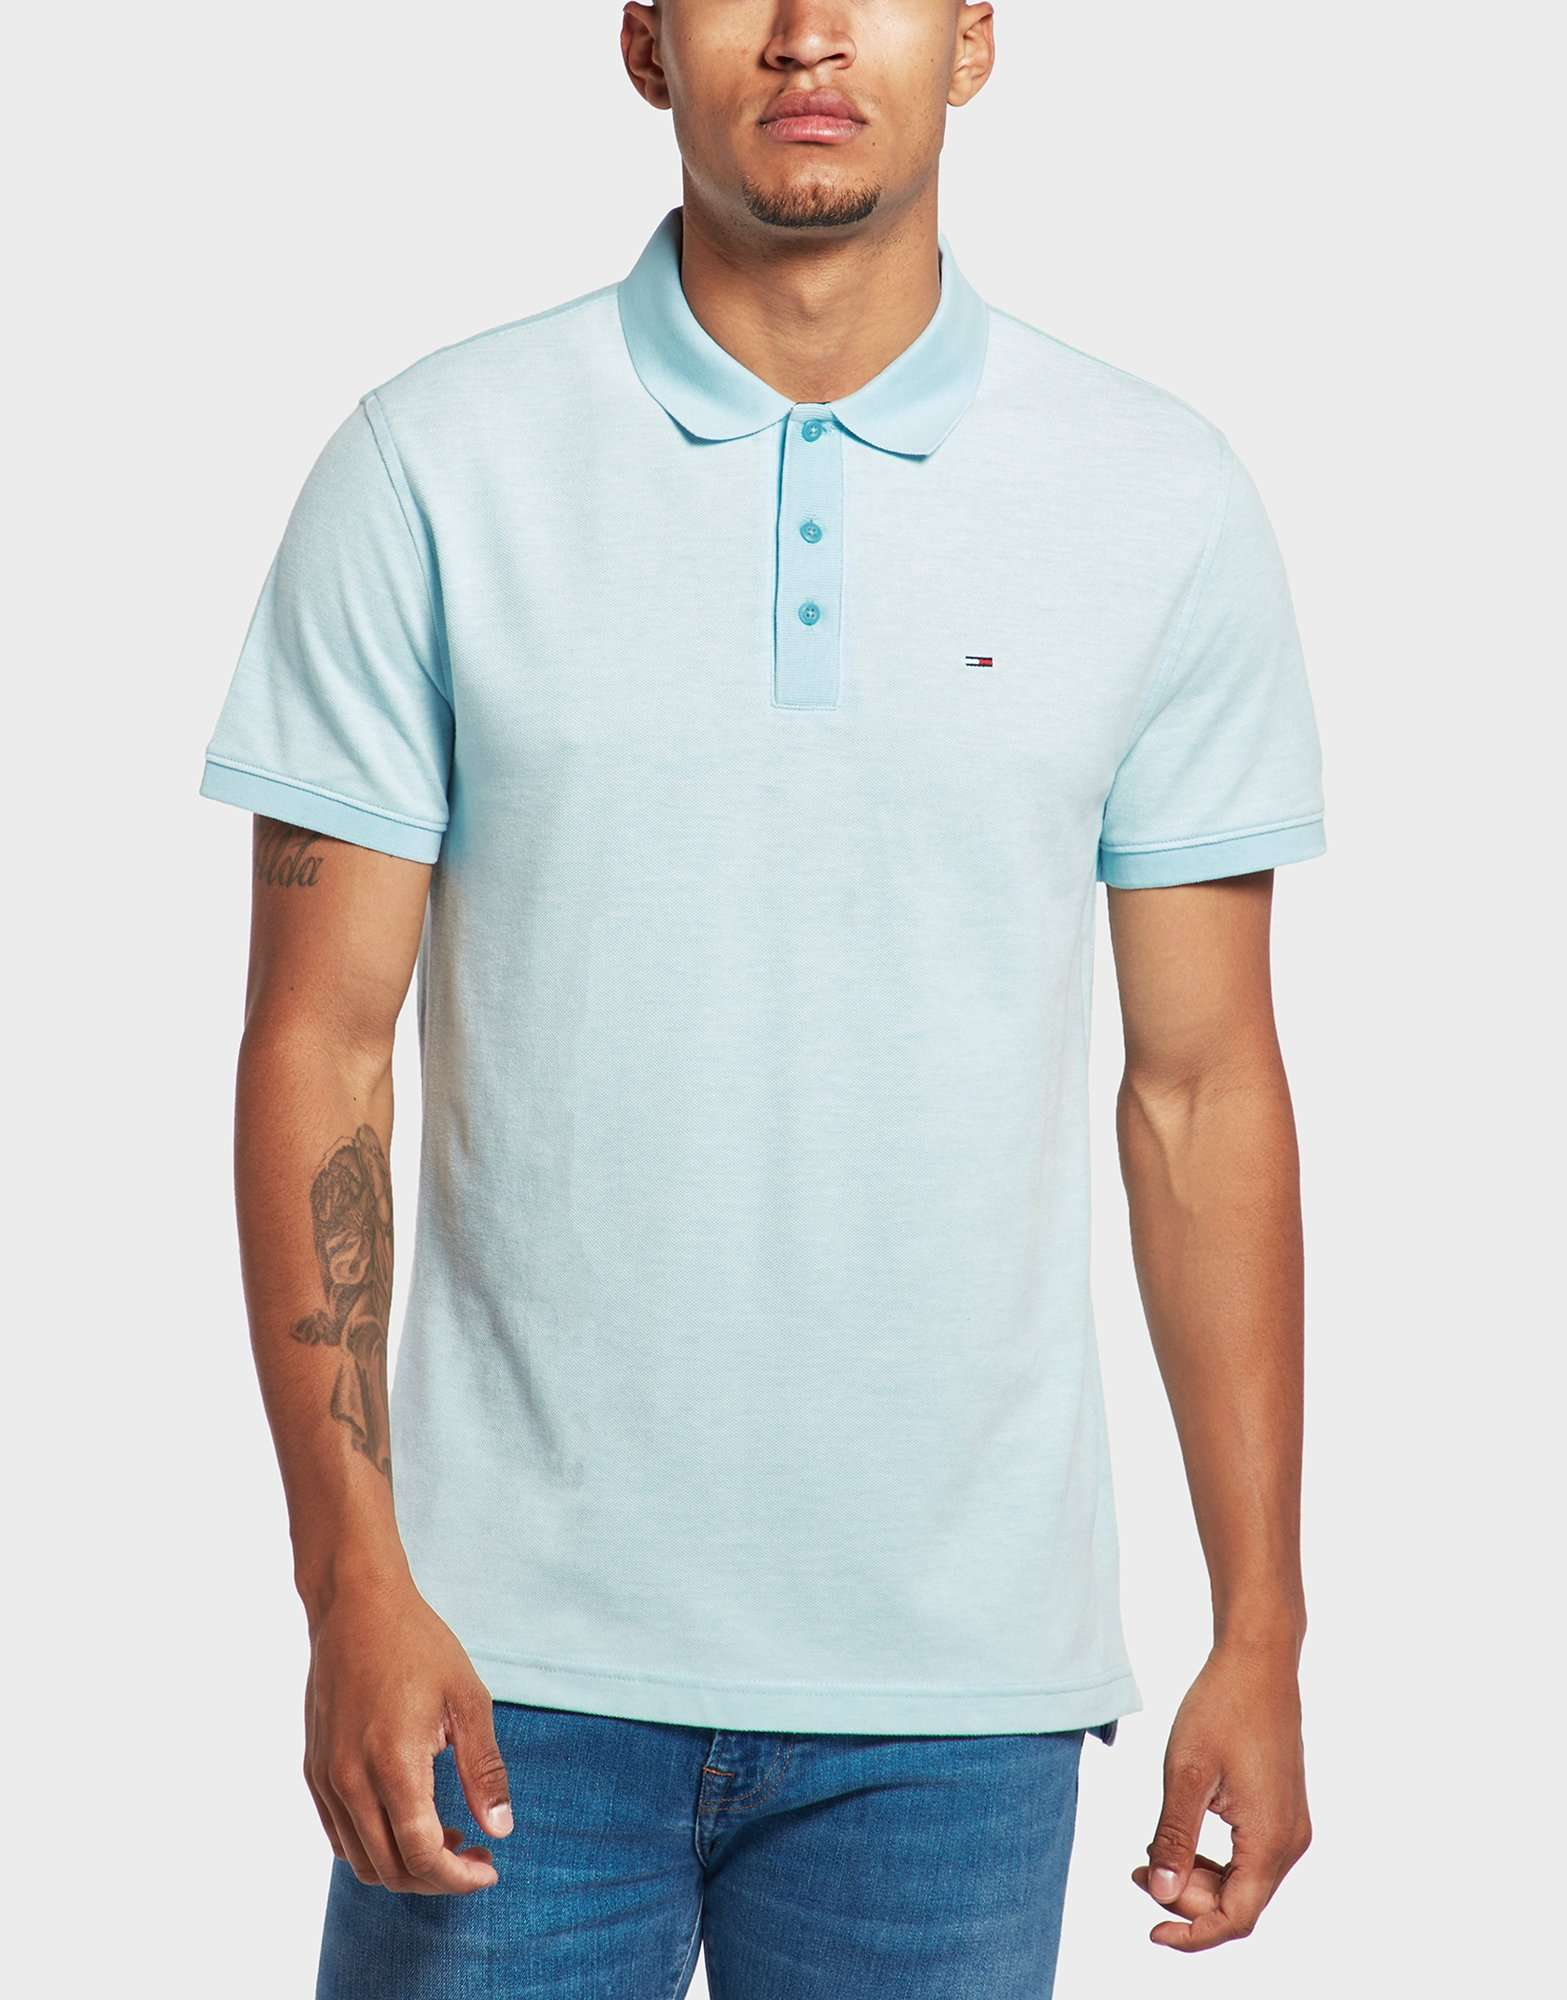 Tommy Jeans Oxford Pique Short Sleeve Polo Shirt